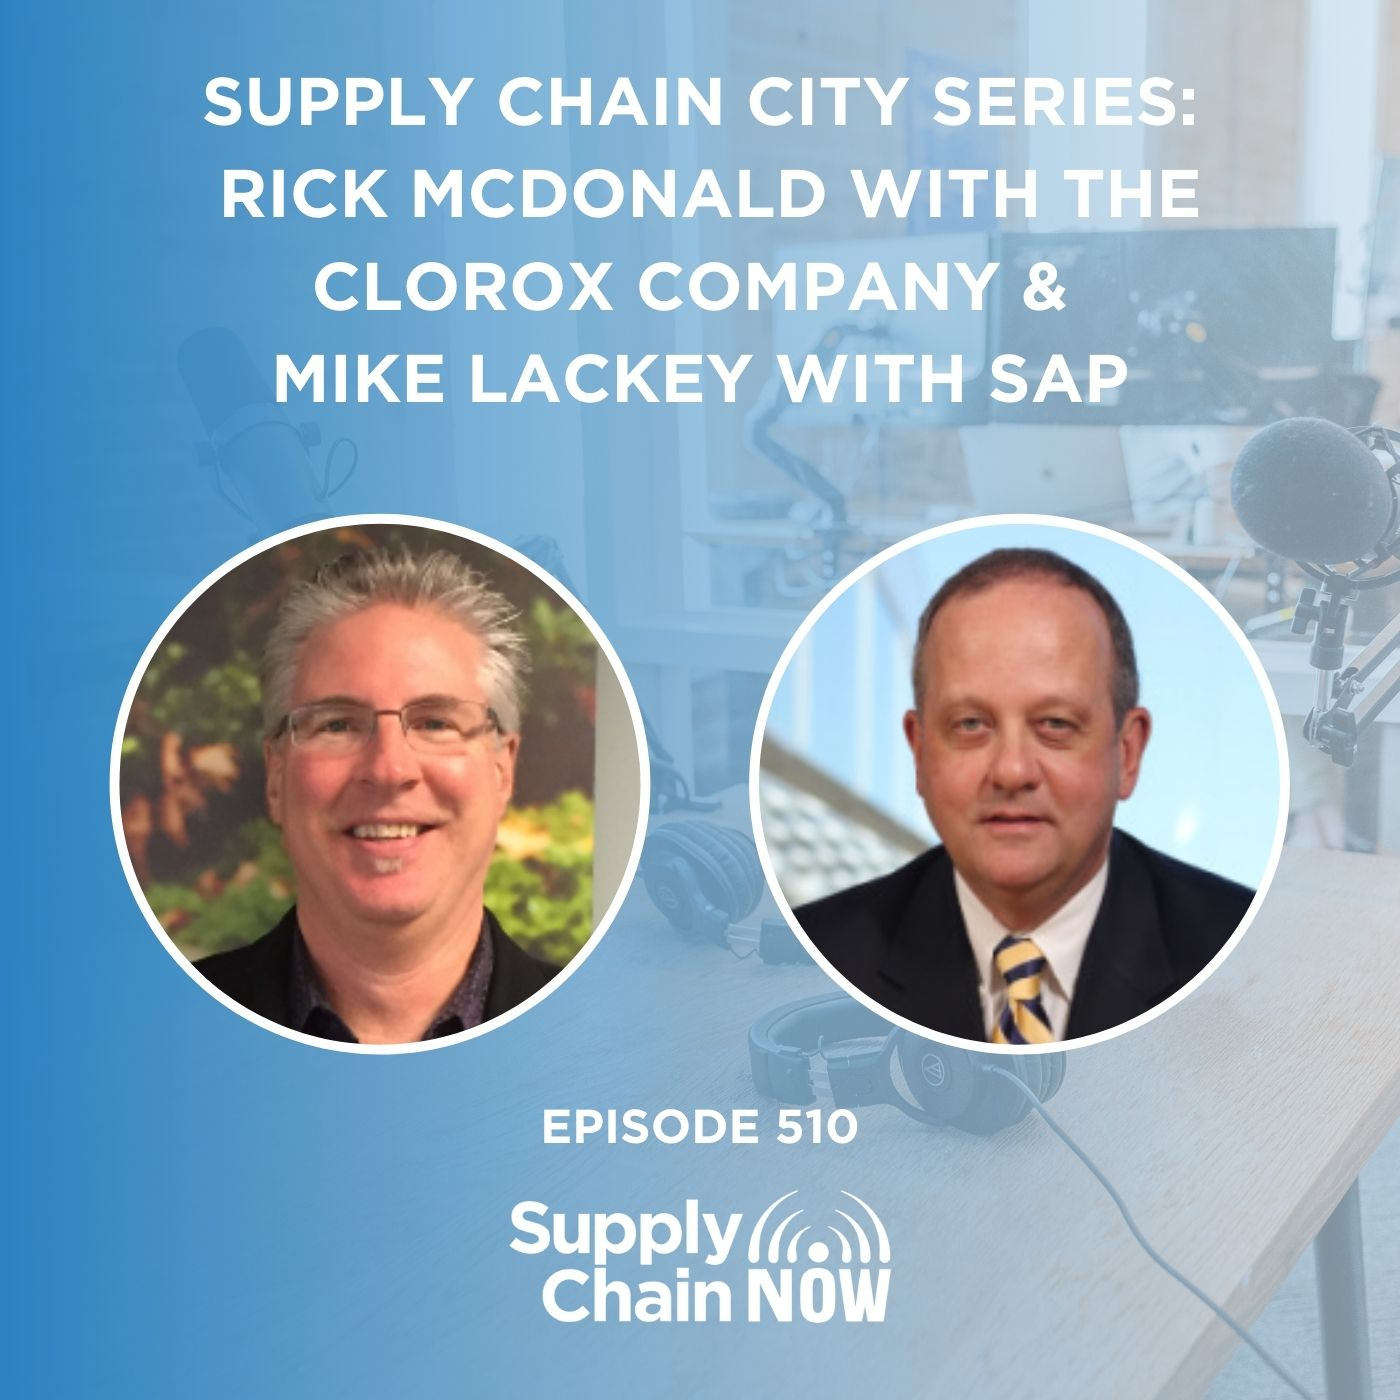 Supply Chain City Series: Rick McDonald with The Clorox Company & Mike Lackey with SAP